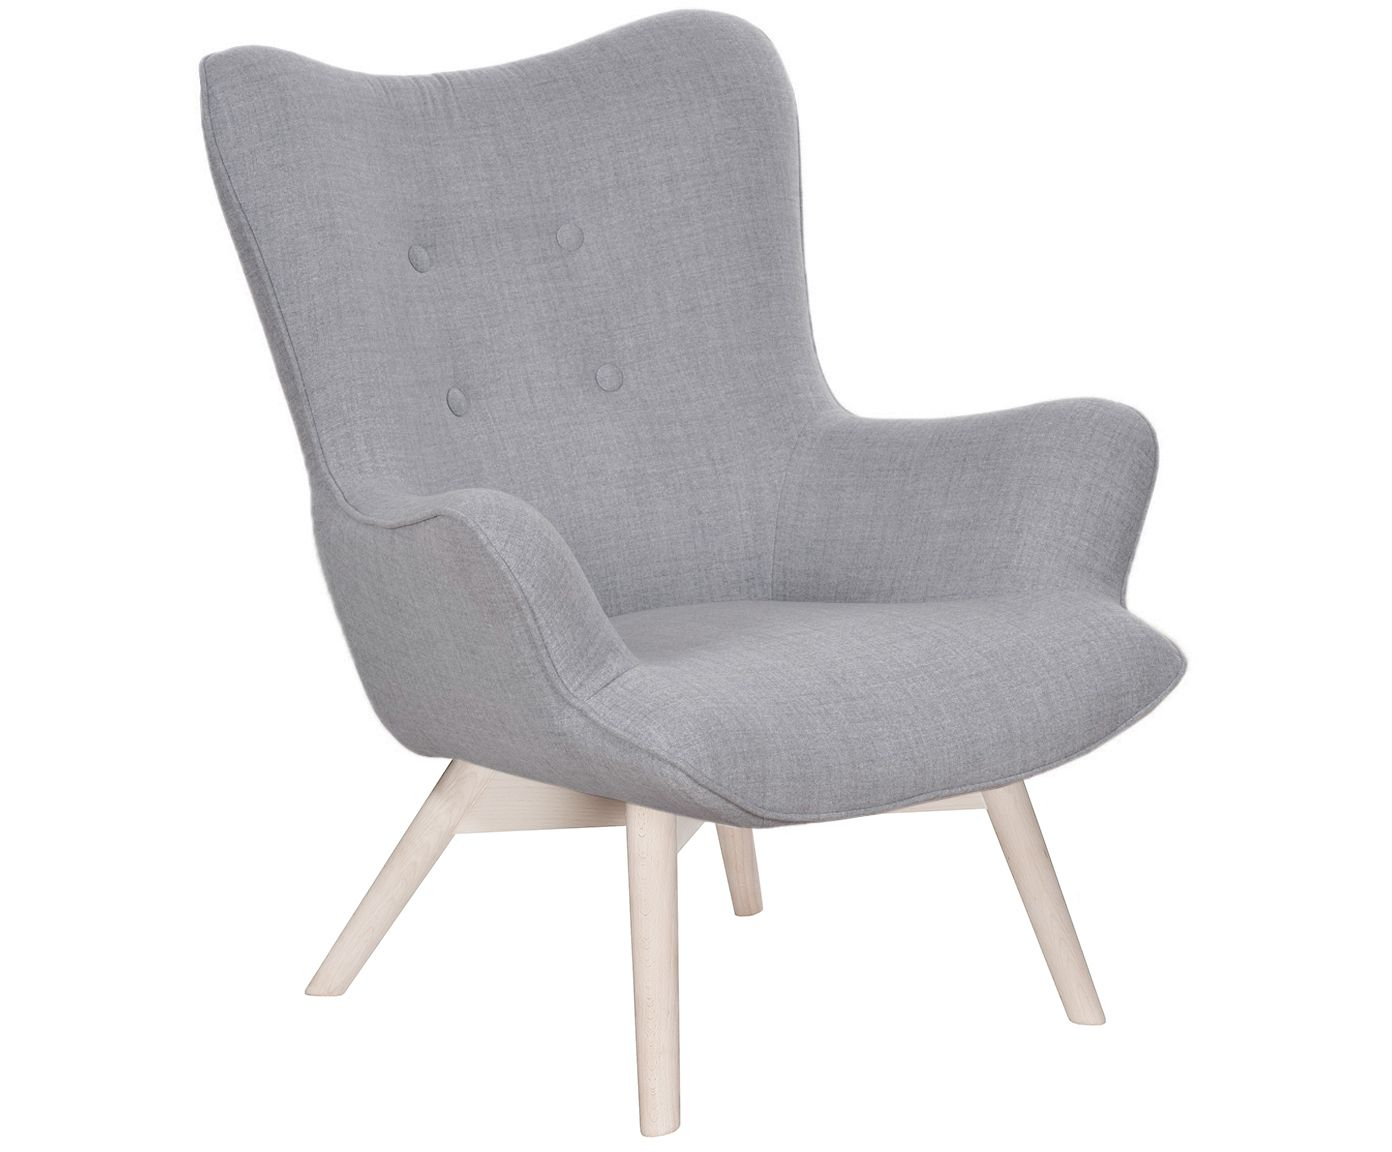 Sessel Twirl | Ohrensessel | Sofa, Couch Und Pent House Inside Twirl Swivel Accent Chairs (View 21 of 25)